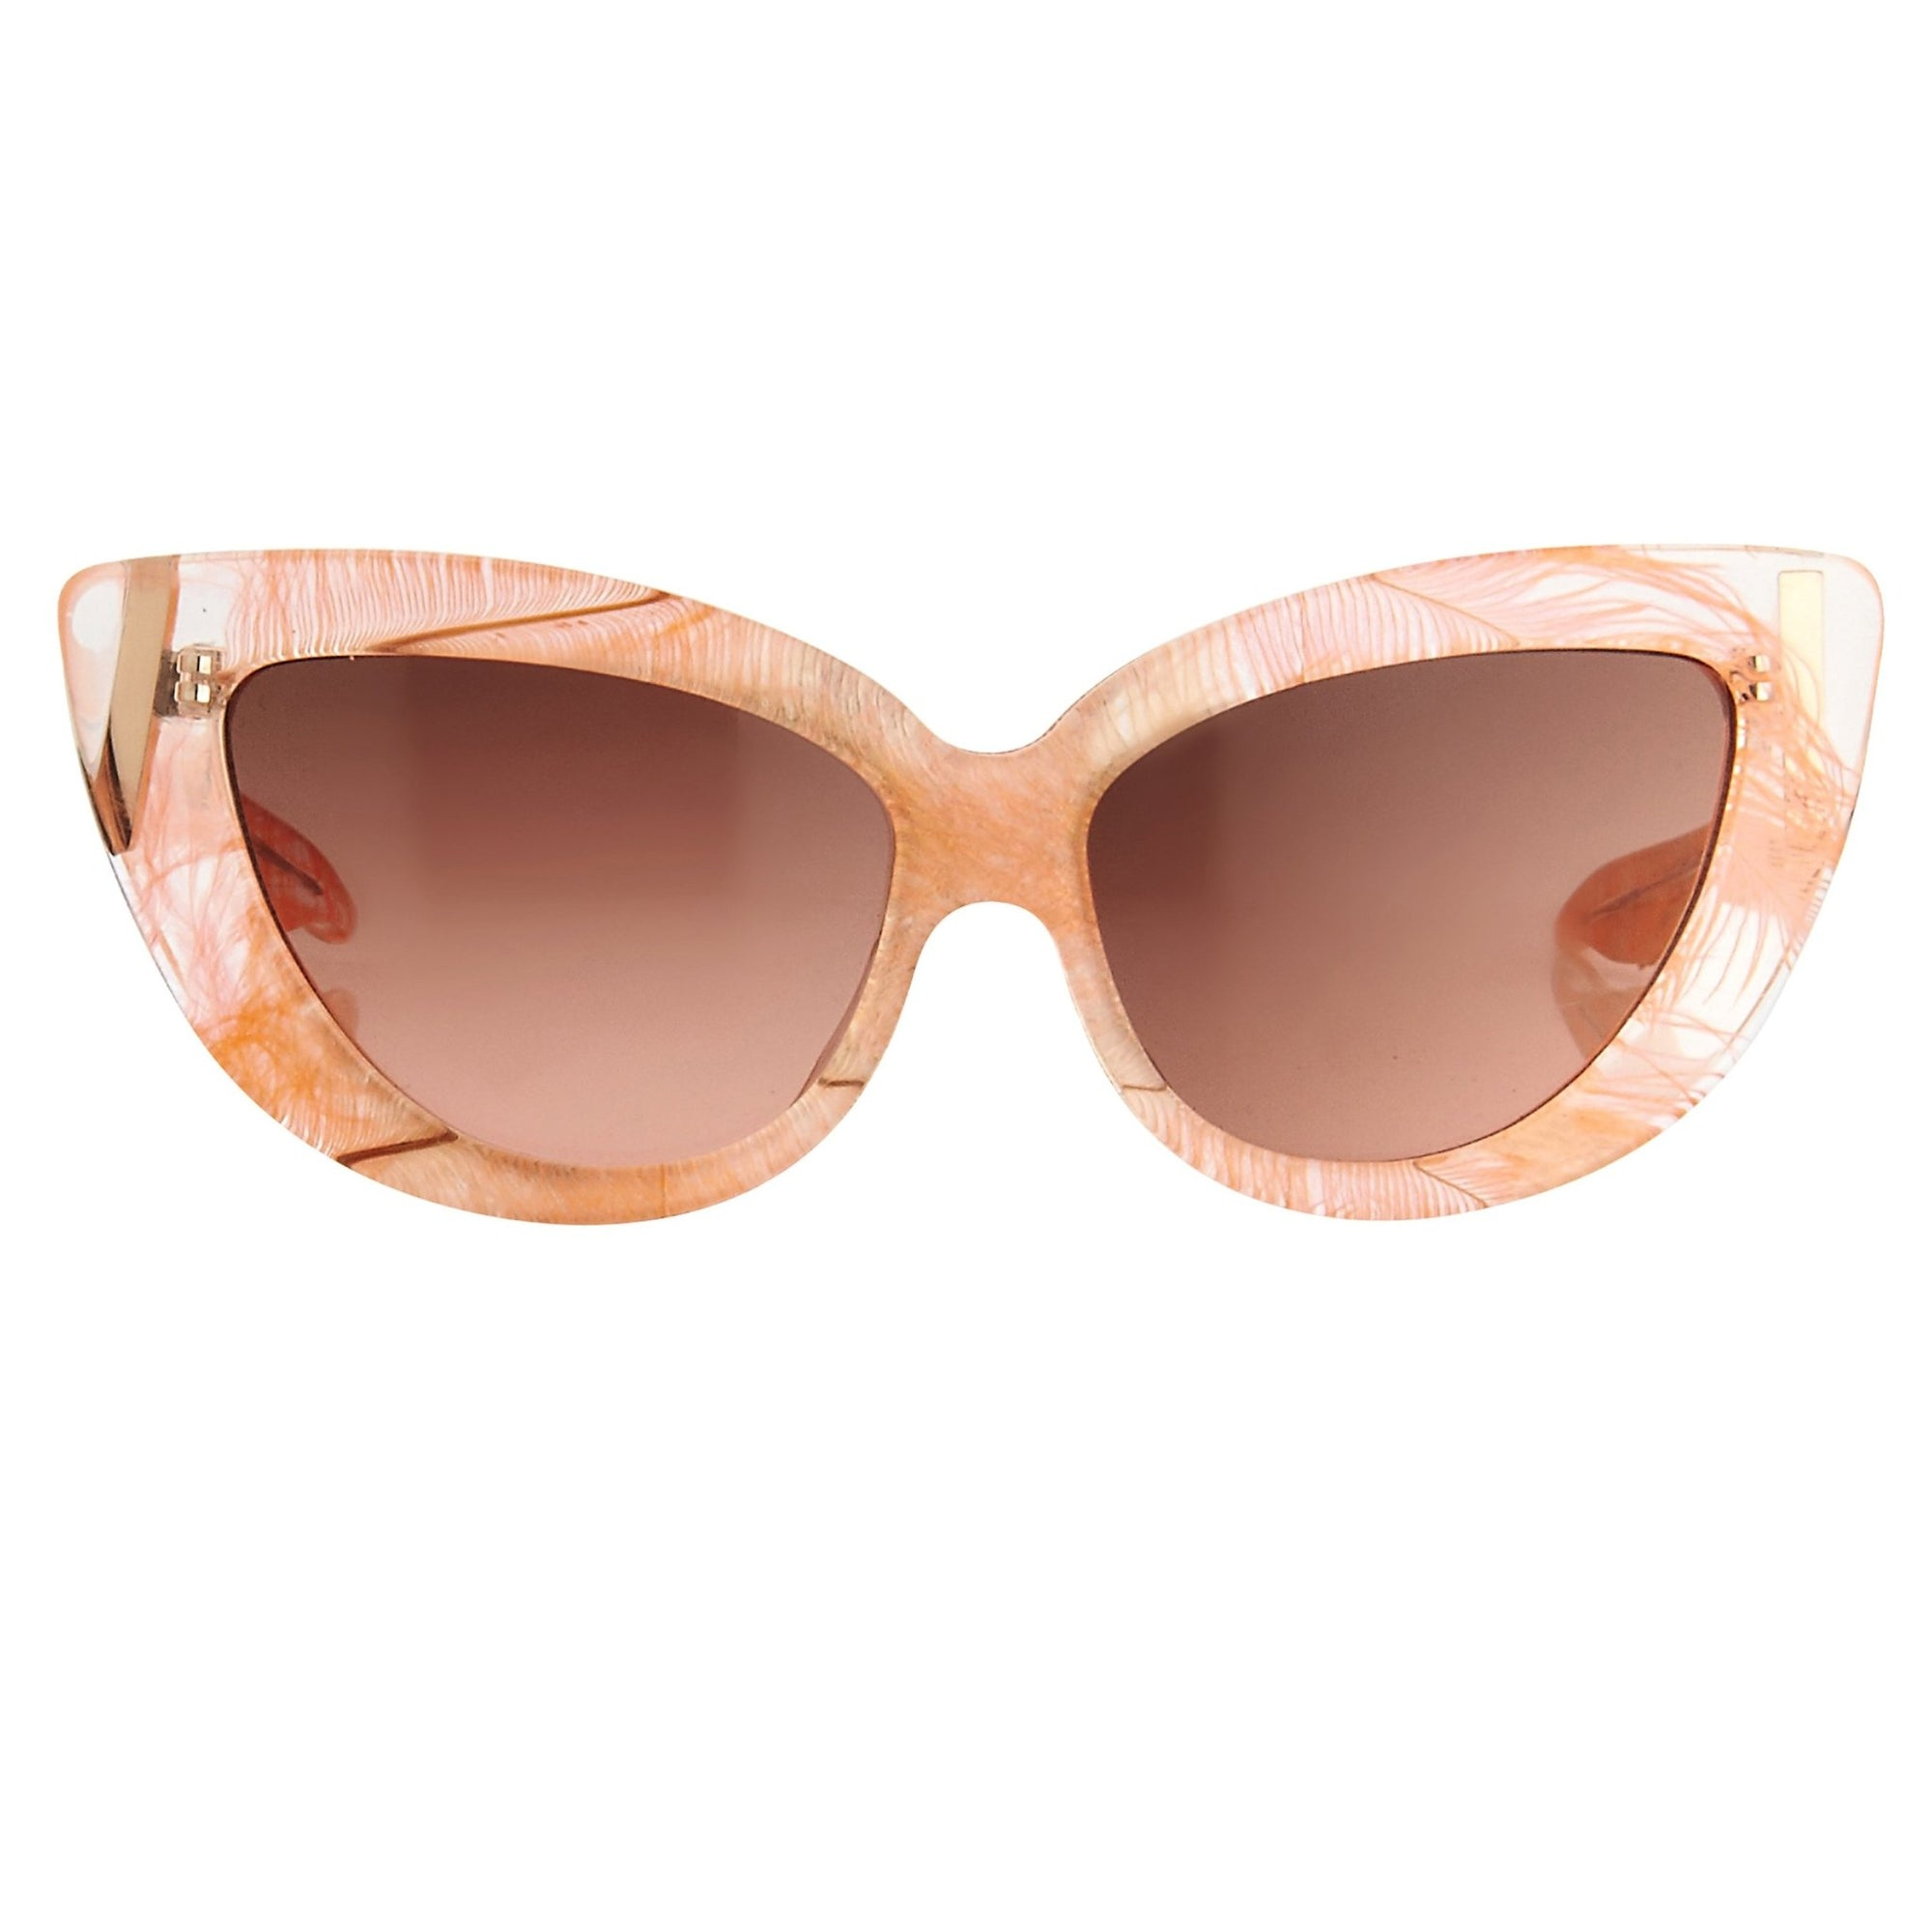 Charlotte Olympia Sunglasses Cat Eyes Orange Clear Feather CO1C4SUN - Watches & Crystals